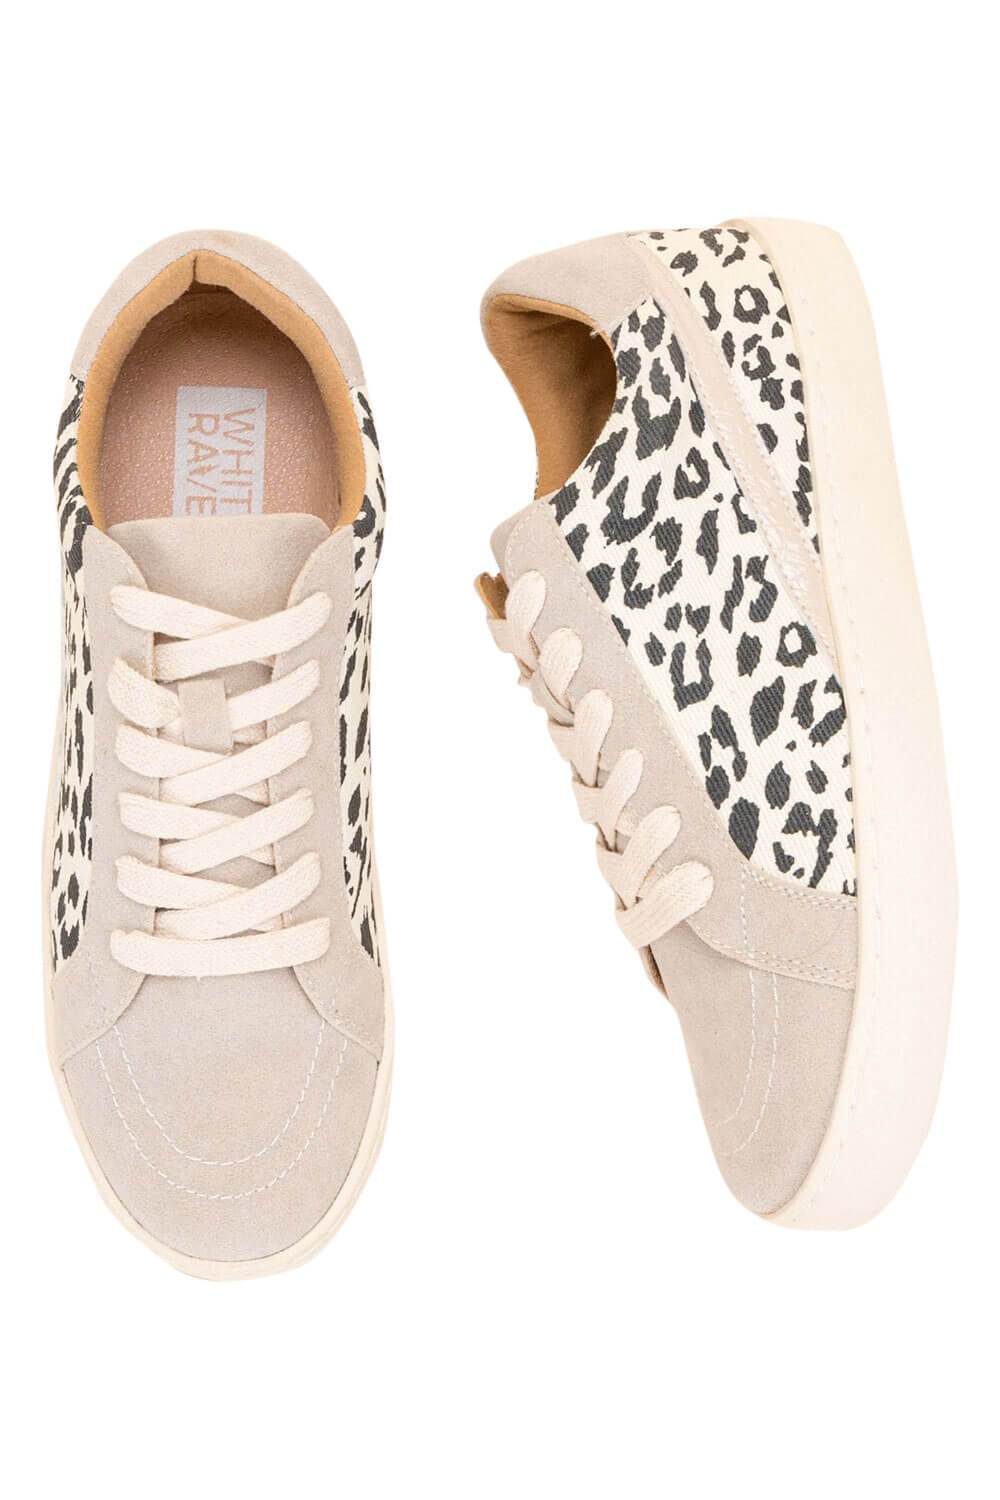 Jordan Leopard Low Top Sneaker beige MILK MONEY